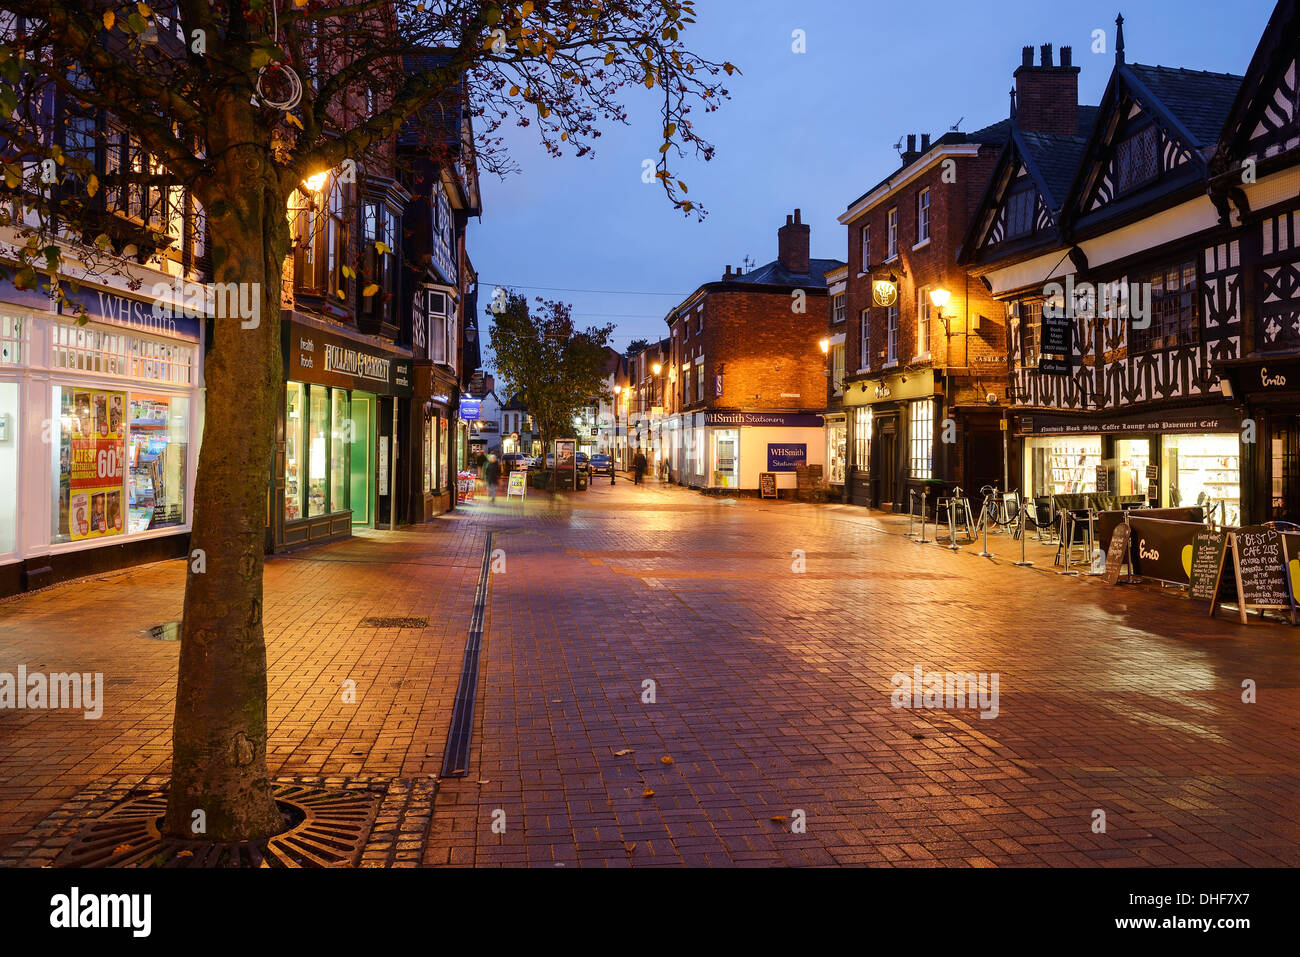 Deserted shopping street in Nantwich town centre - Stock Image